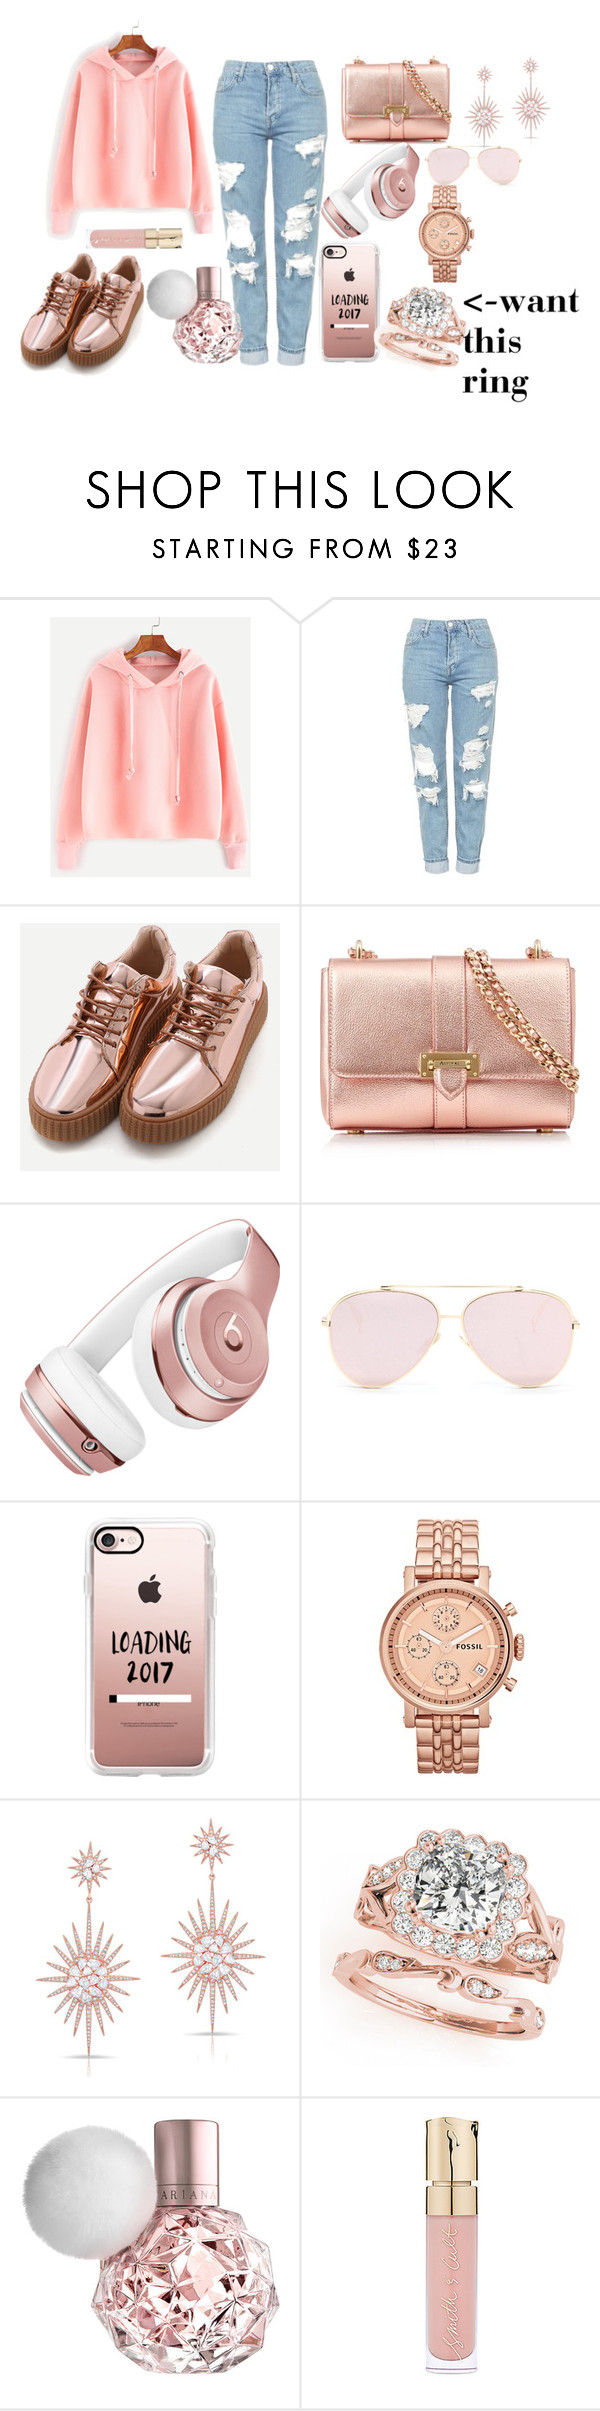 """yeah i want it"" by megi-queen ❤ liked on Polyvore featuring Topshop, Aspinal of London, Beats by Dr. Dre, Casetify, FOSSIL, Anne Sisteron and Smith & Cult"